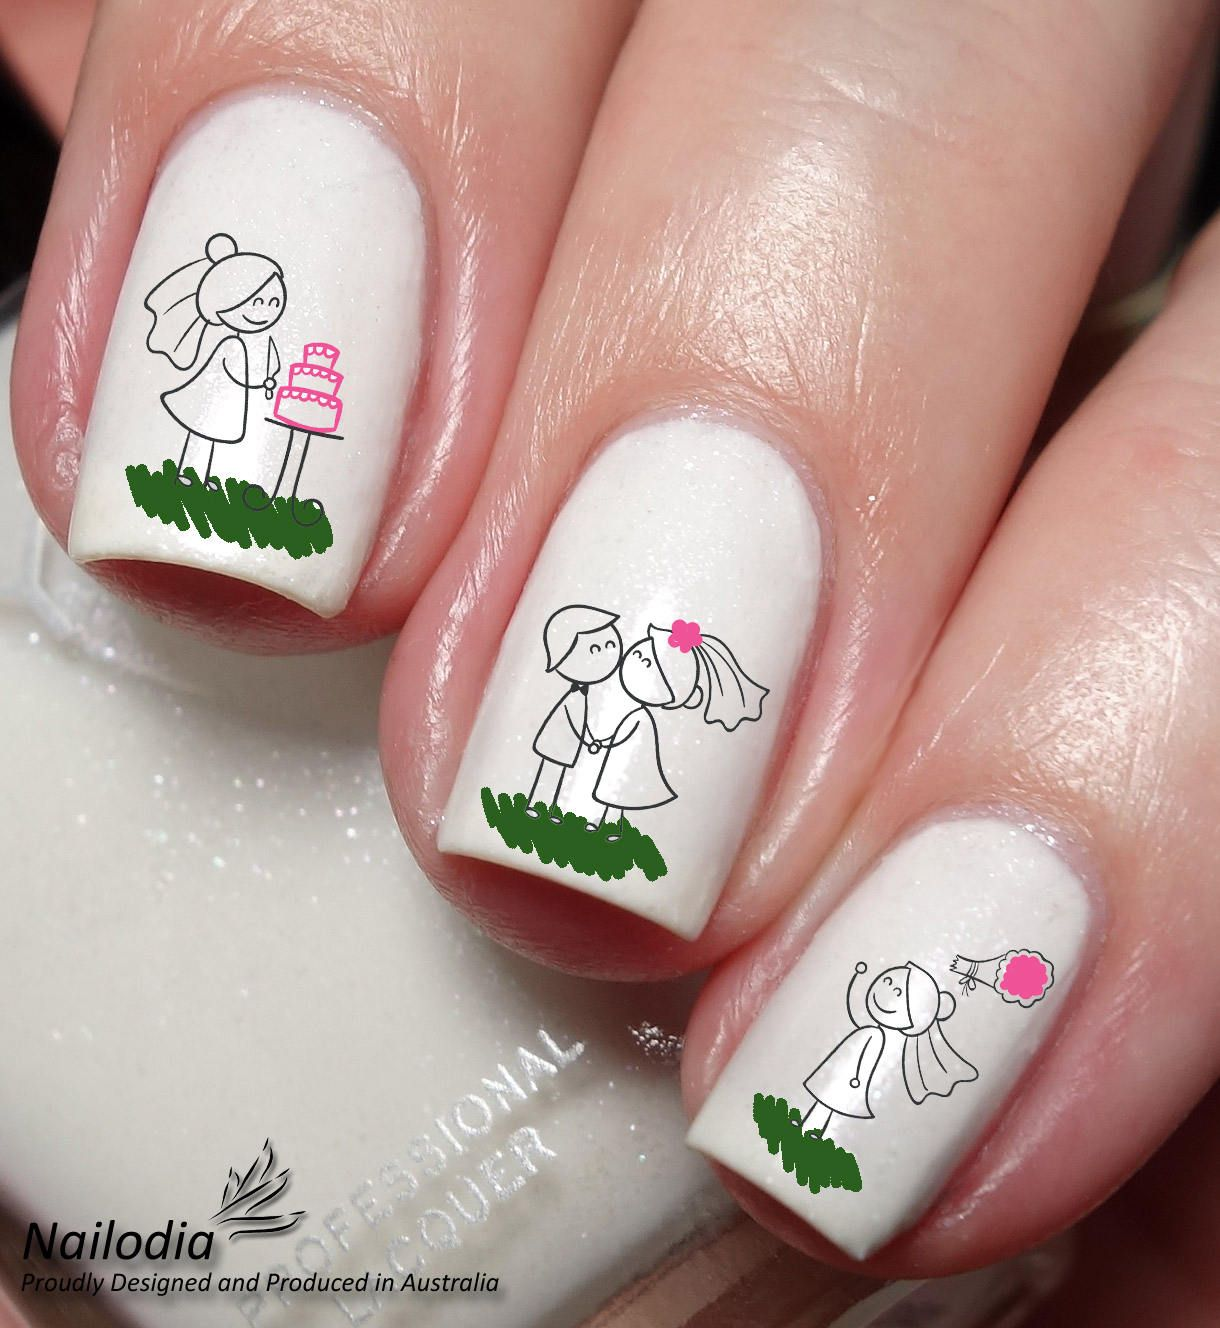 Stick Figure Wedding Love Nail Art Sticker Water Transfer Decal By Nailodia On Etsy Nail Art Nails Nail Art Stickers